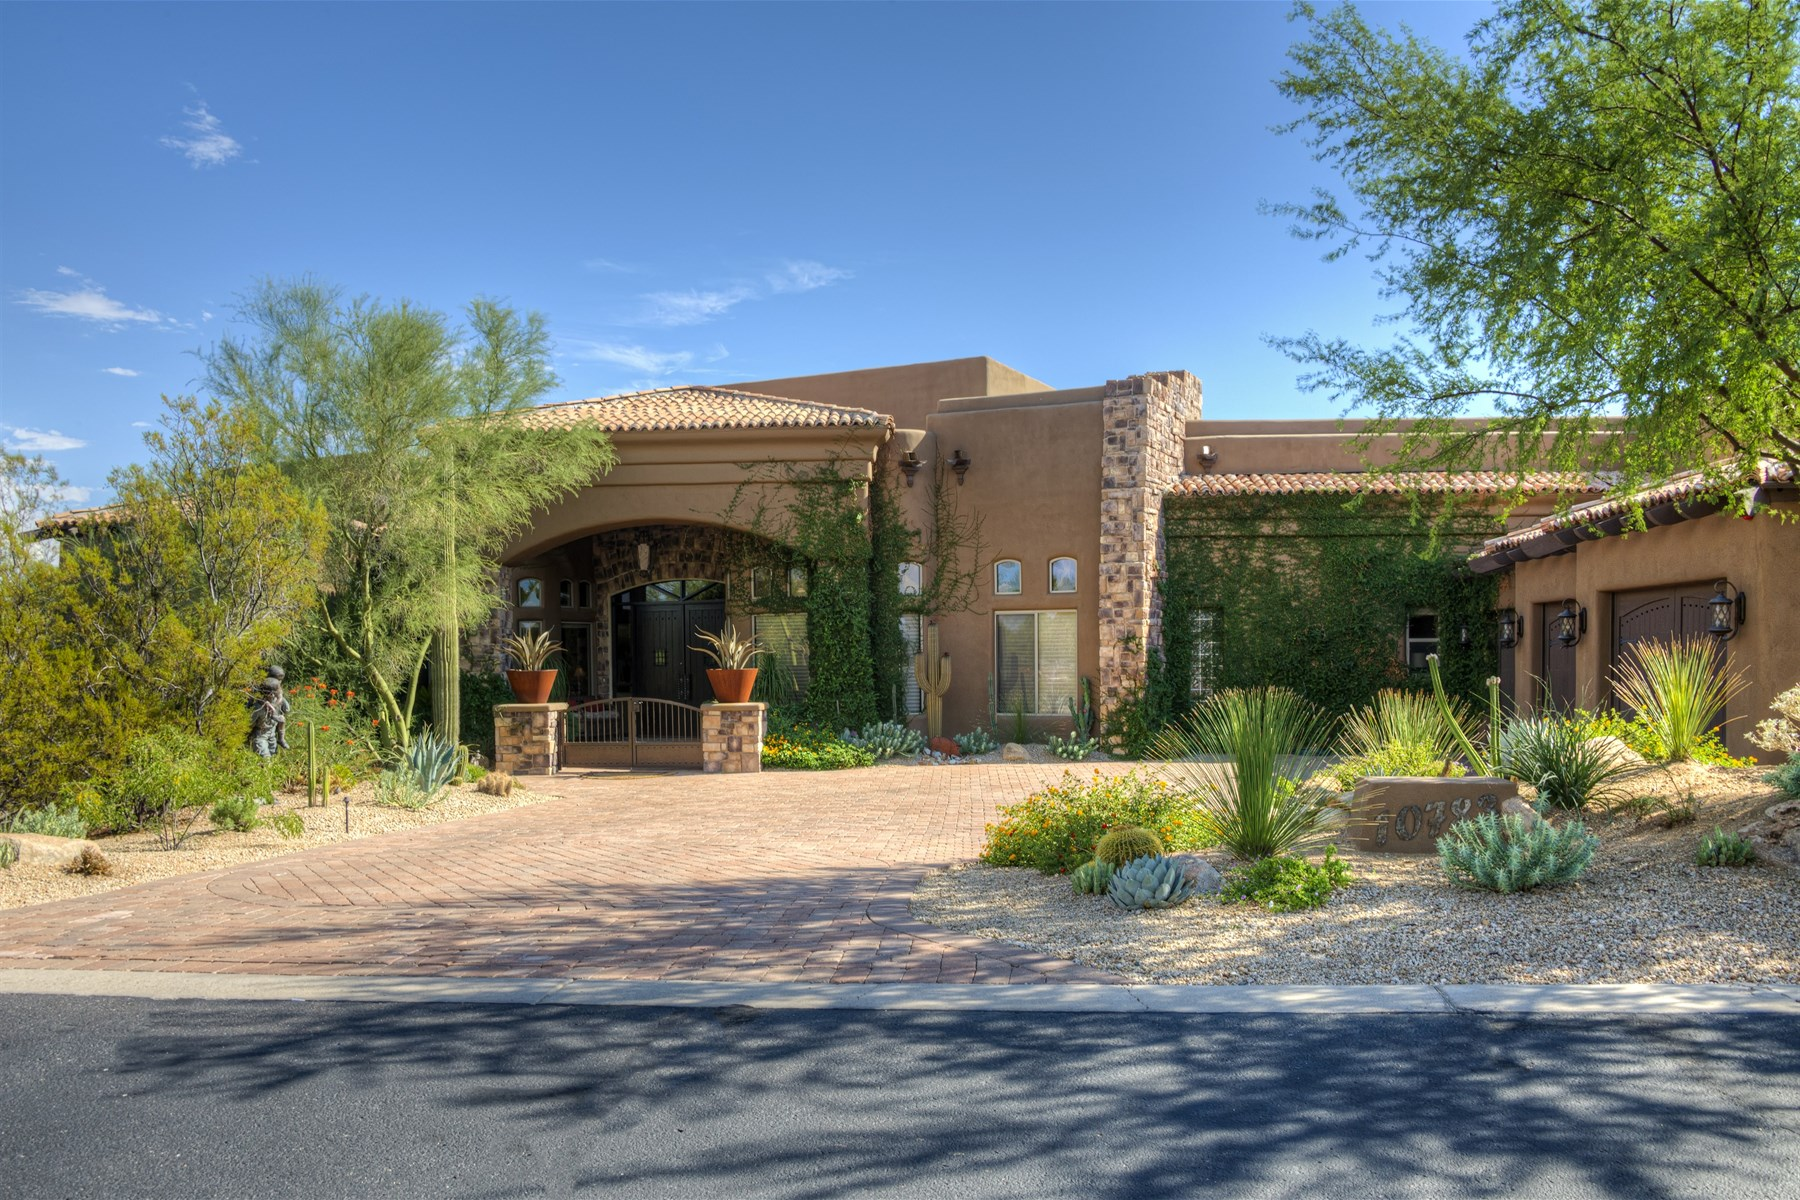 Single Family Home for Sale at Situated on one of the best golf course lots in Troon North's Pinnacle Canyon 10783 E Mark Lane Scottsdale, Arizona 85262 United States